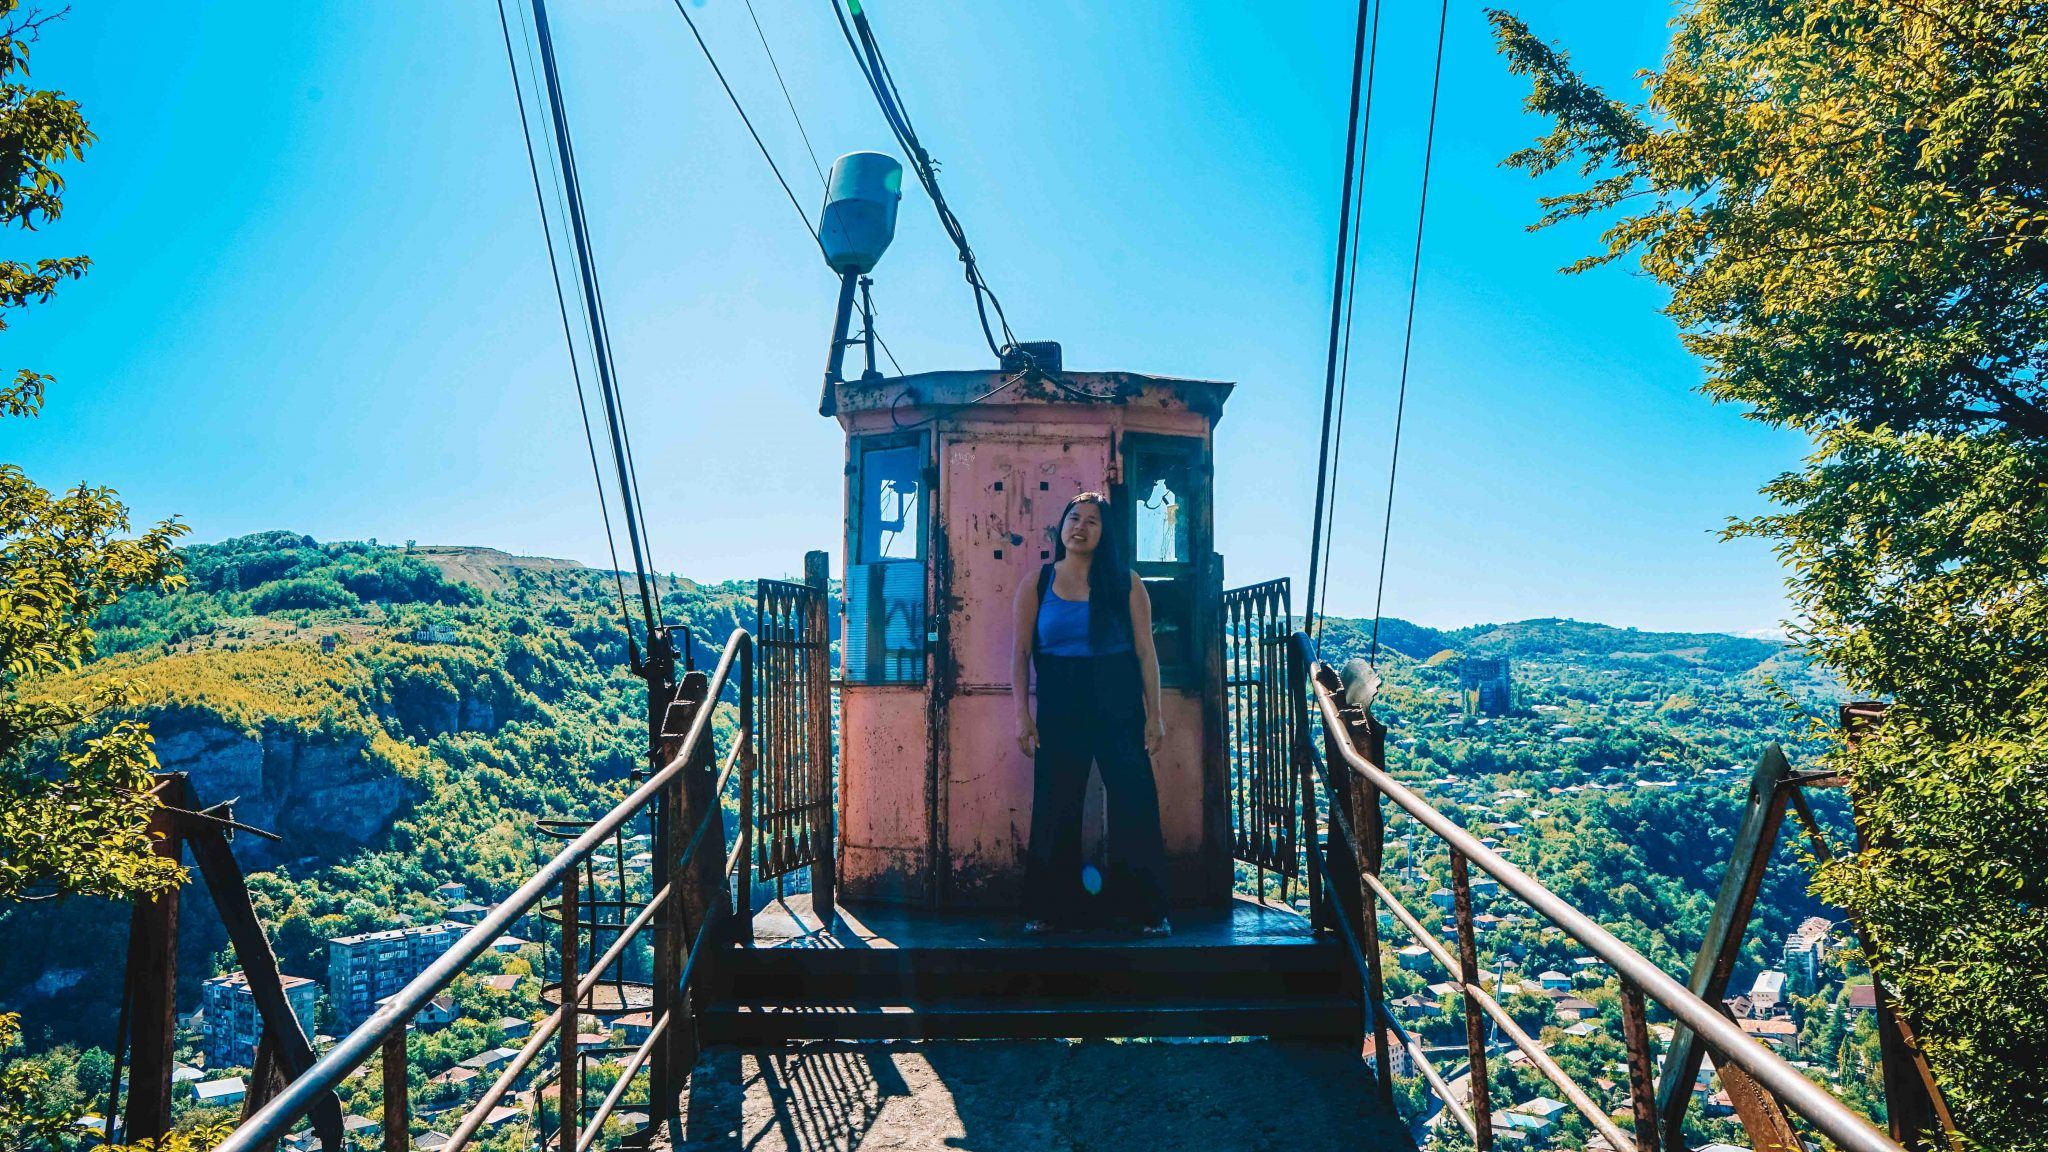 Chiatura Cable Cars